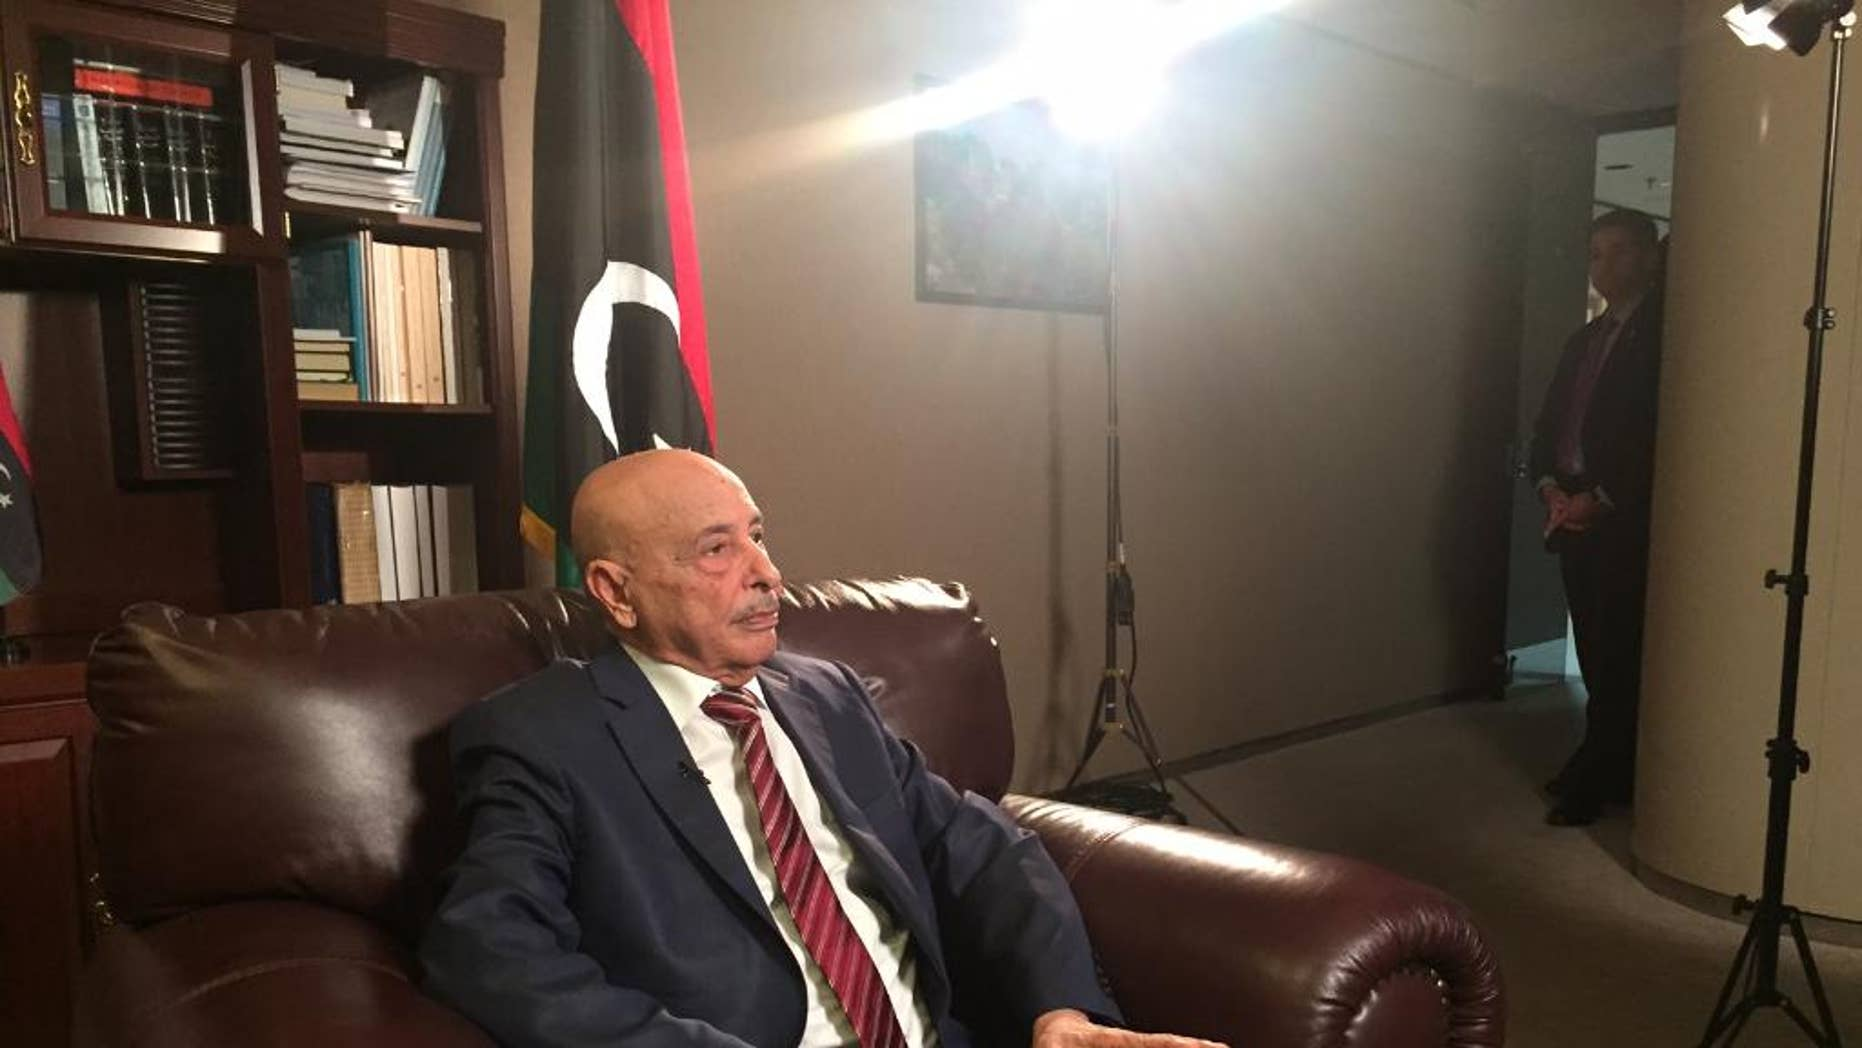 Libya's parliament speaker Ageila Saleh speaks during an interview Sunday, Sept. 27, 2015, at United Nations headquarters. (AP Photo/Cara Anna)